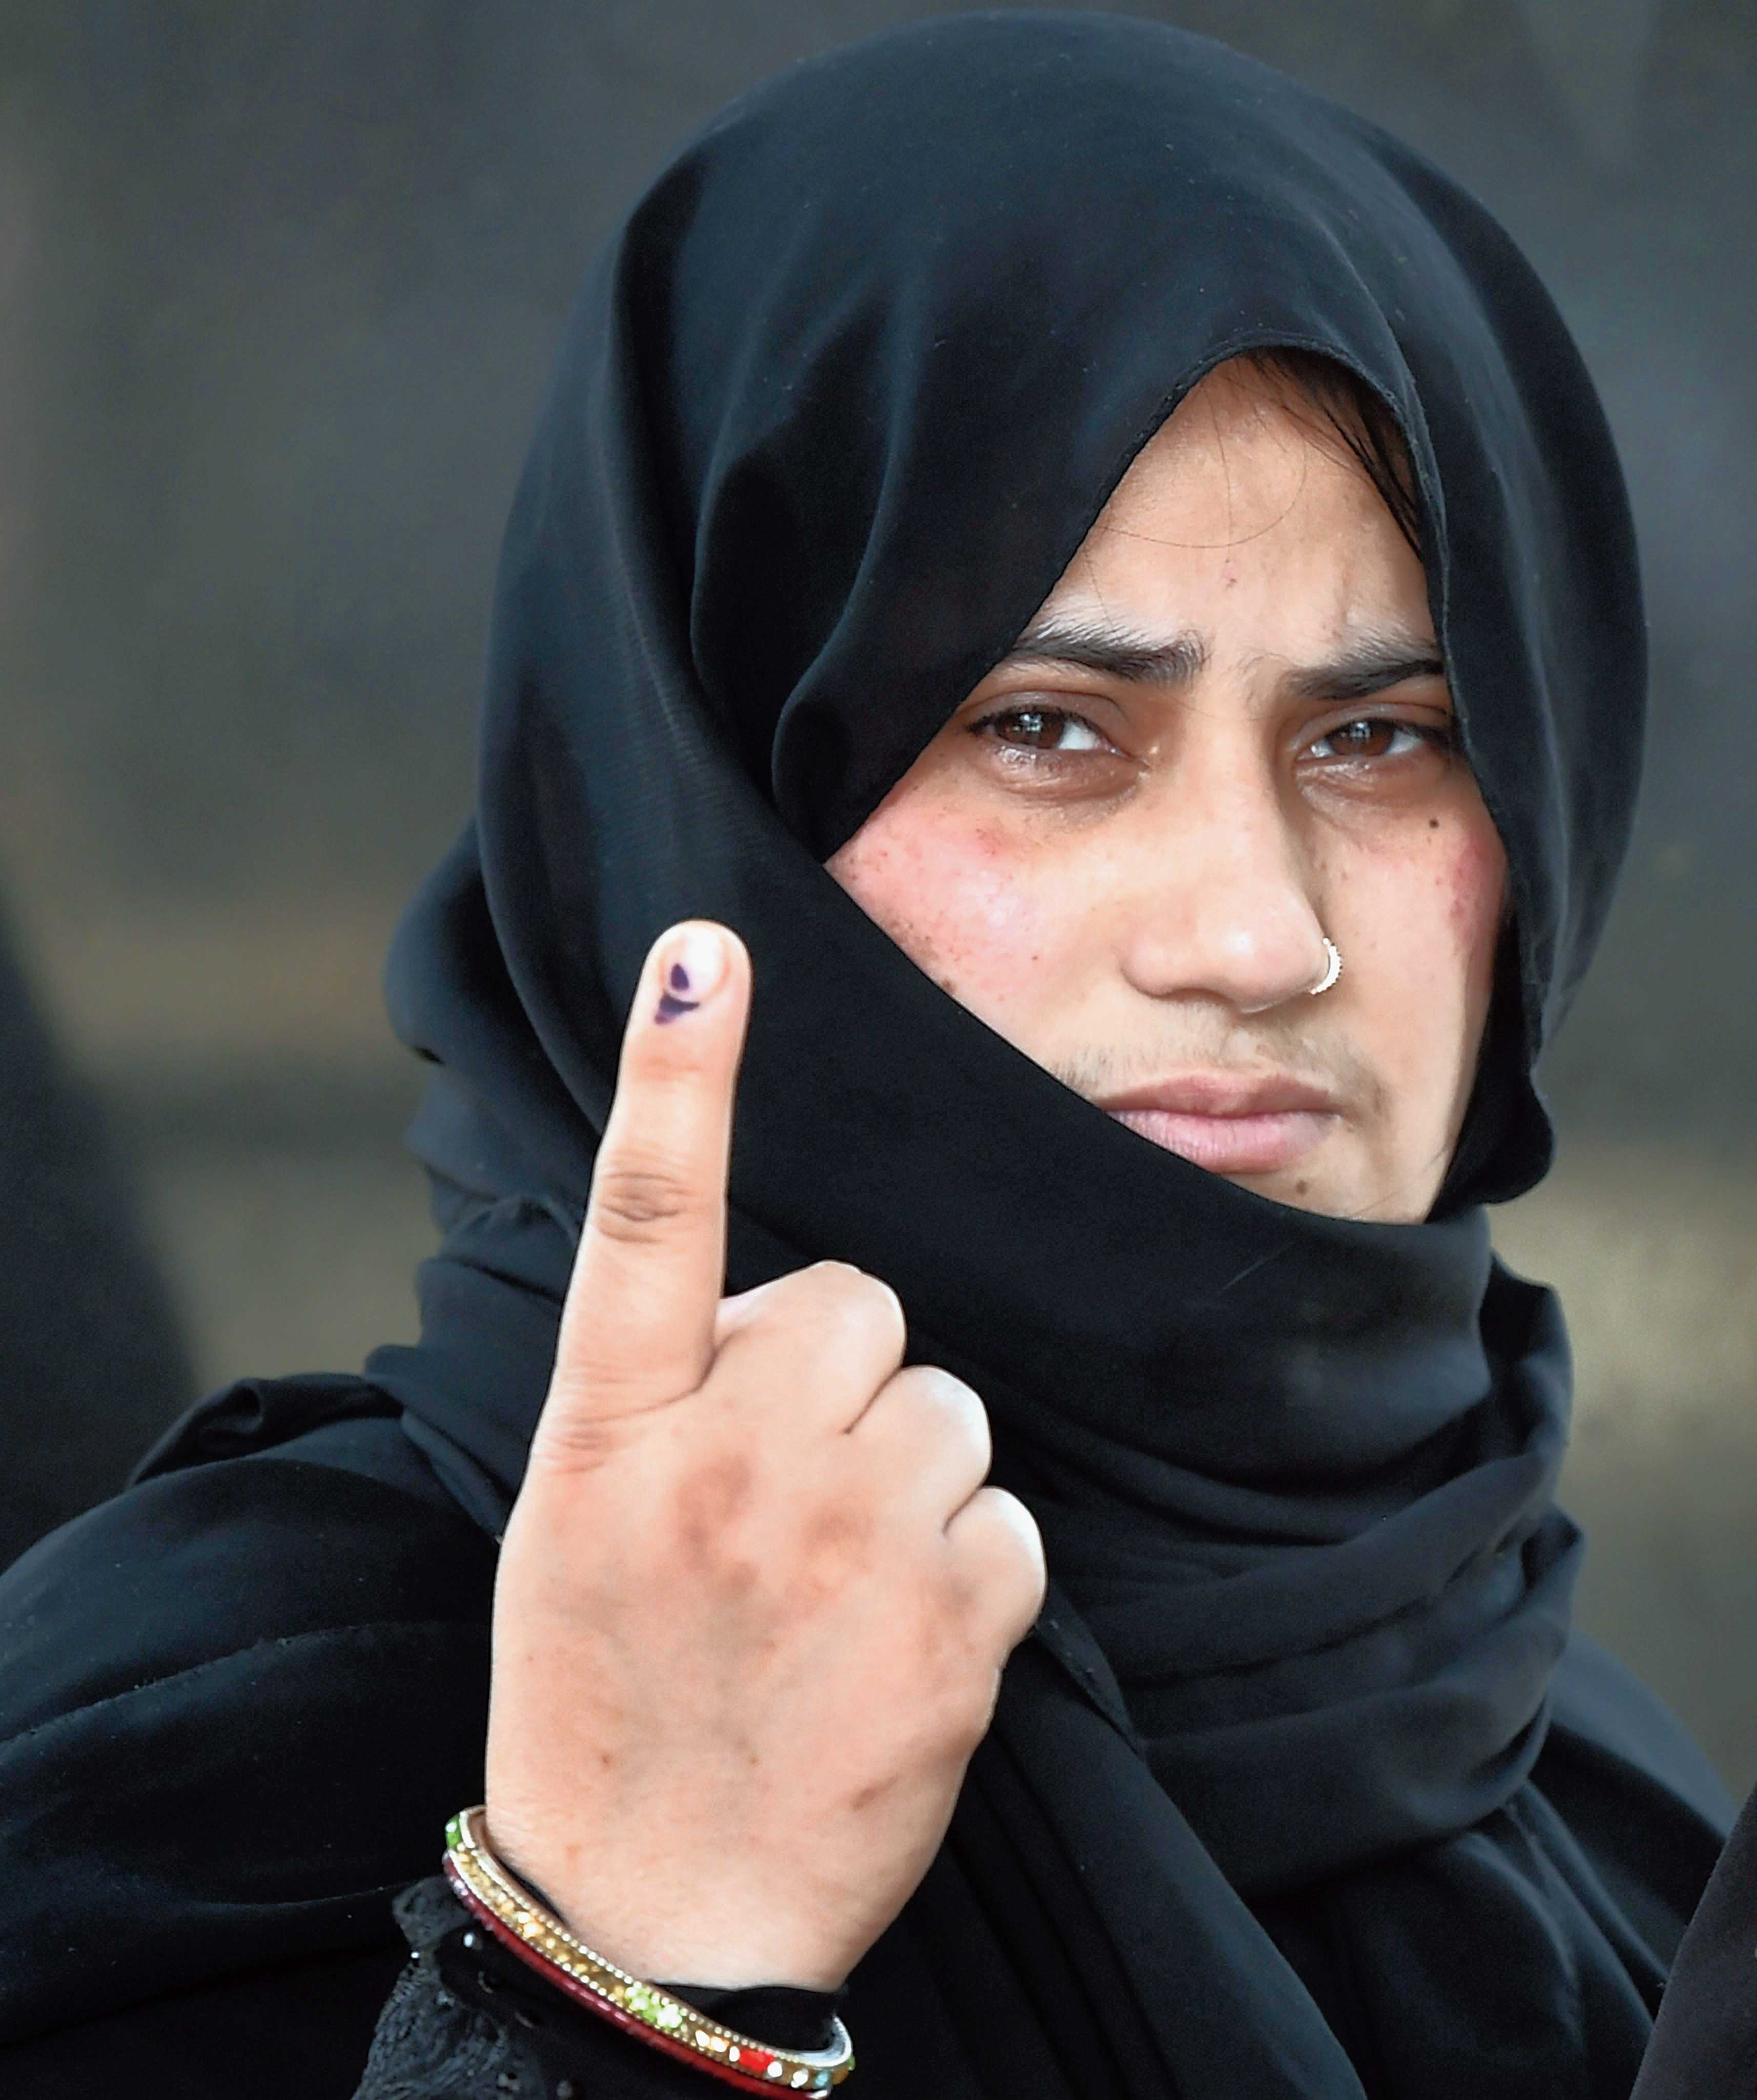 A woman in Dadri, Uttar Pradesh, shows her ink-marked finger at a polling station. Dadri is part of Gautam Buddh Nagar constituency.